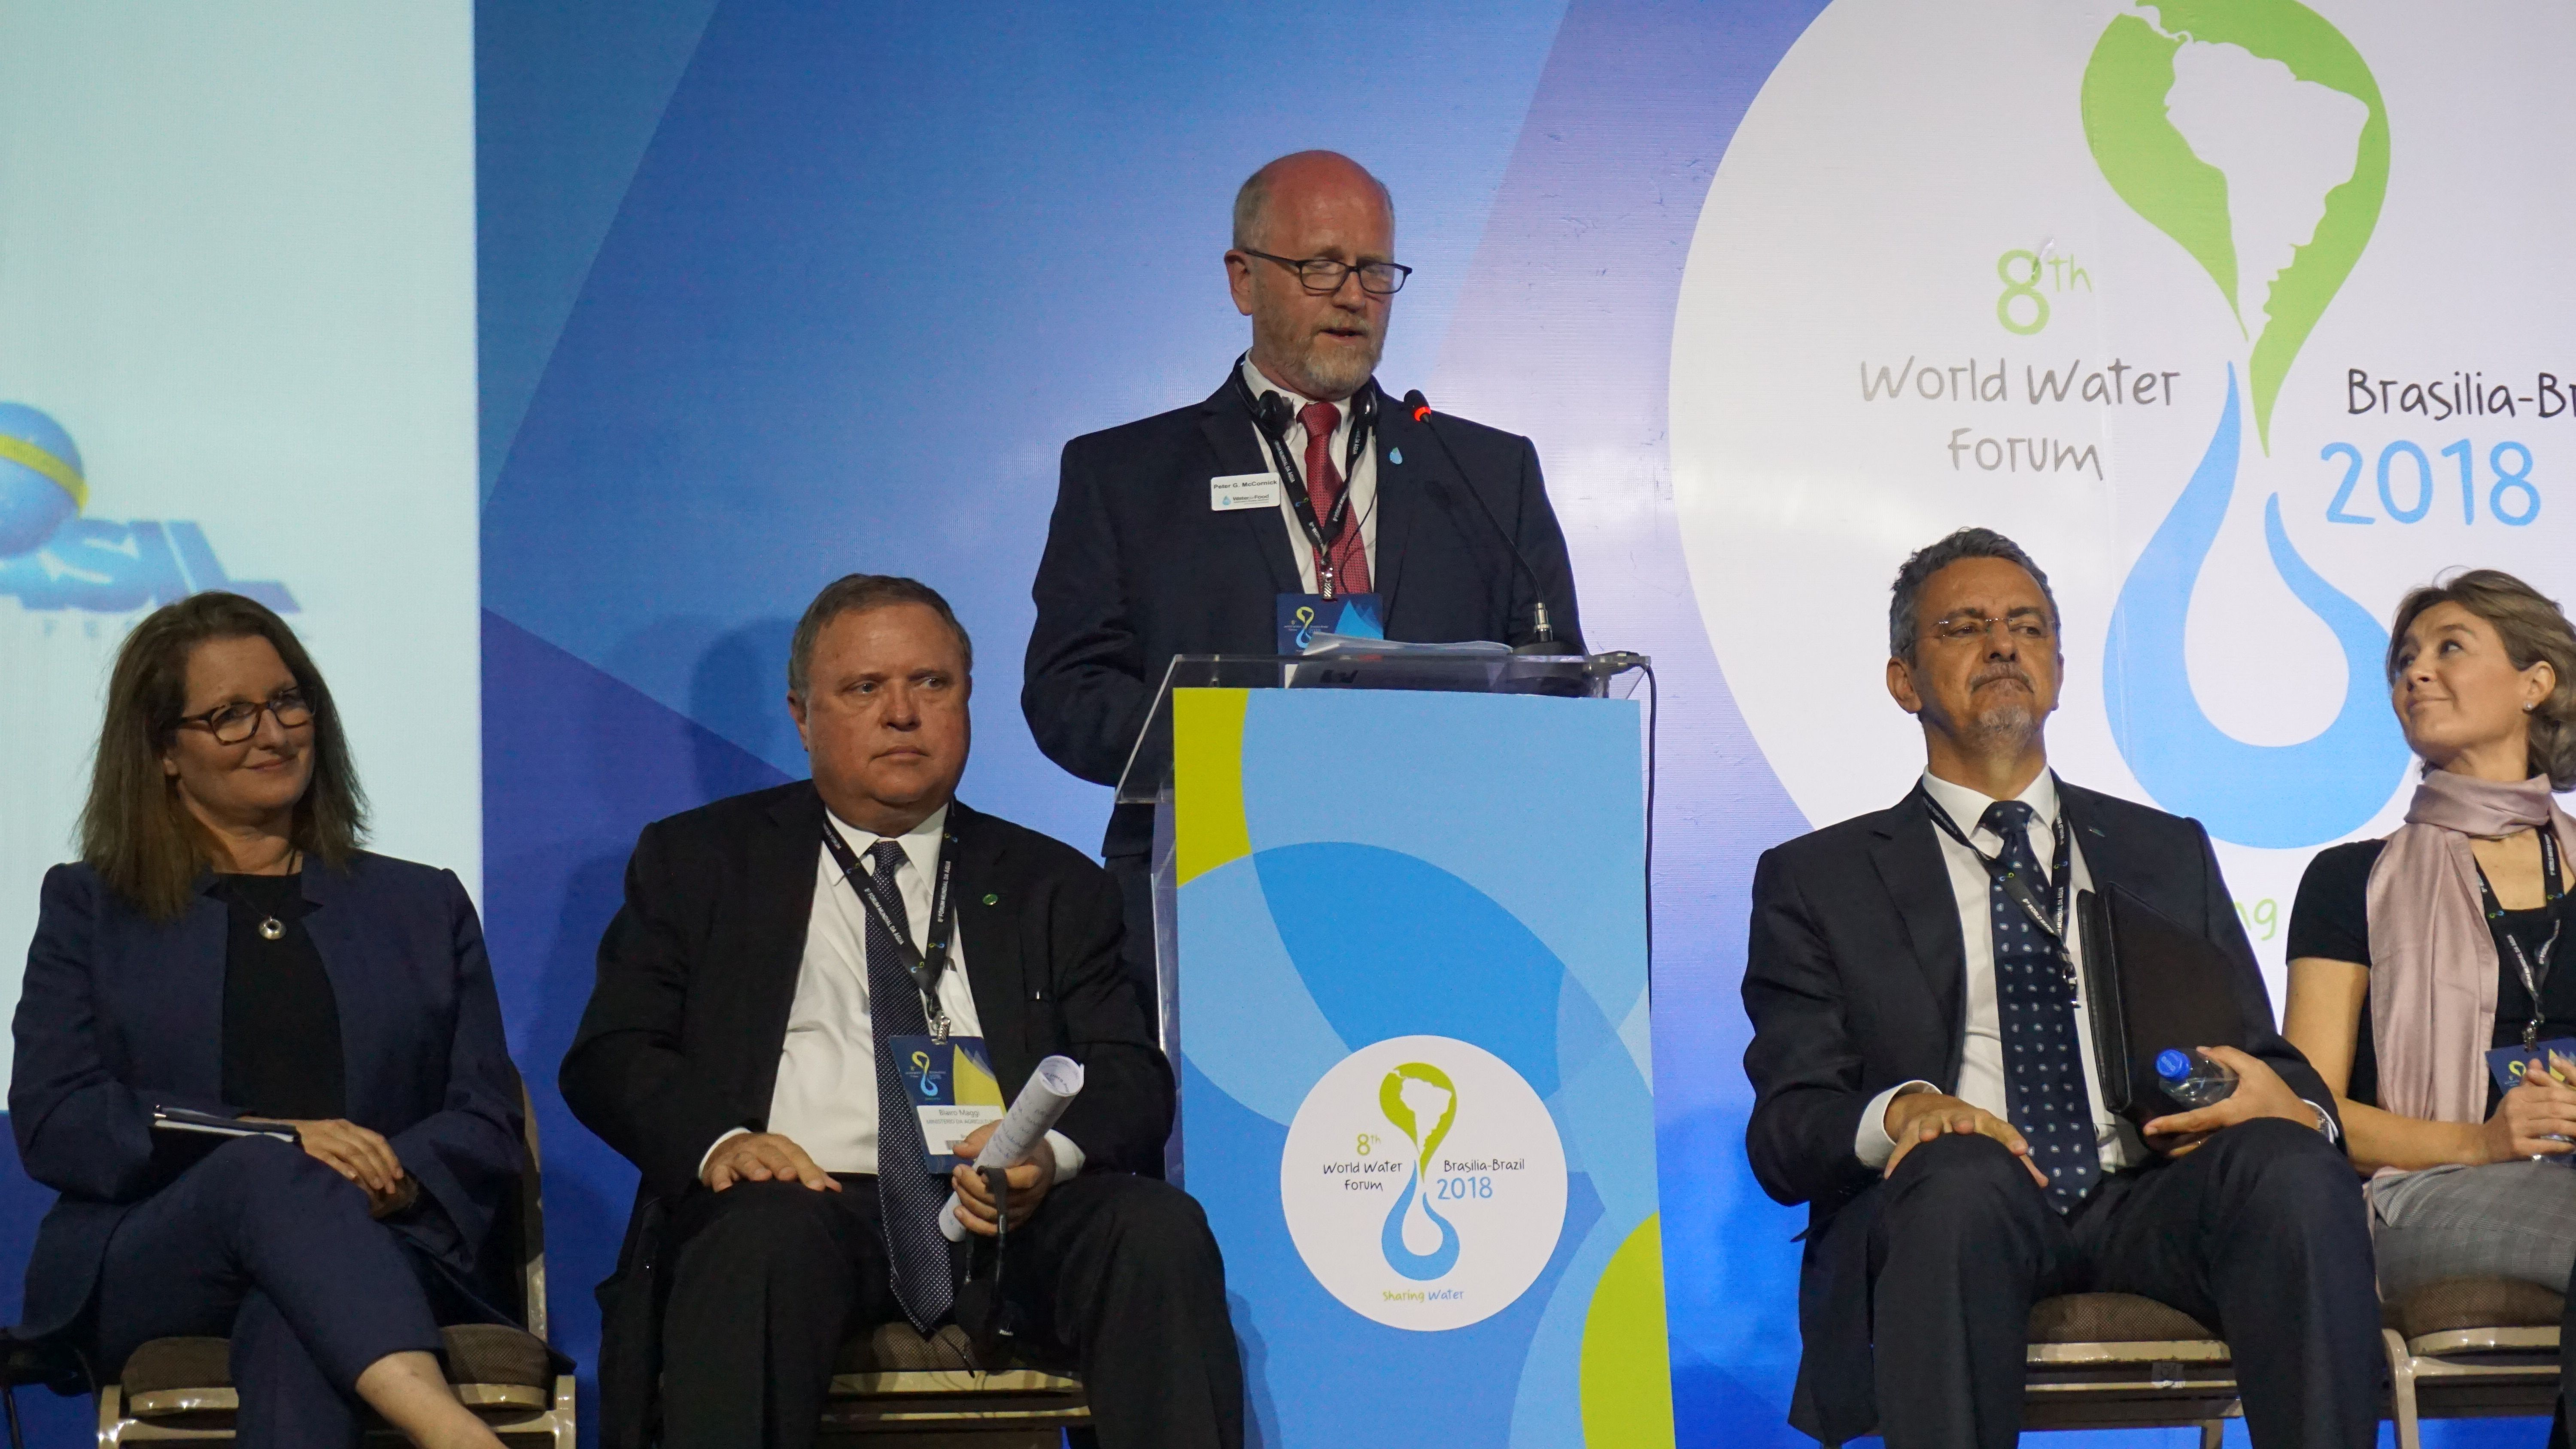 Water for Food High Level Panel, 8th World Water Forum, Brazil